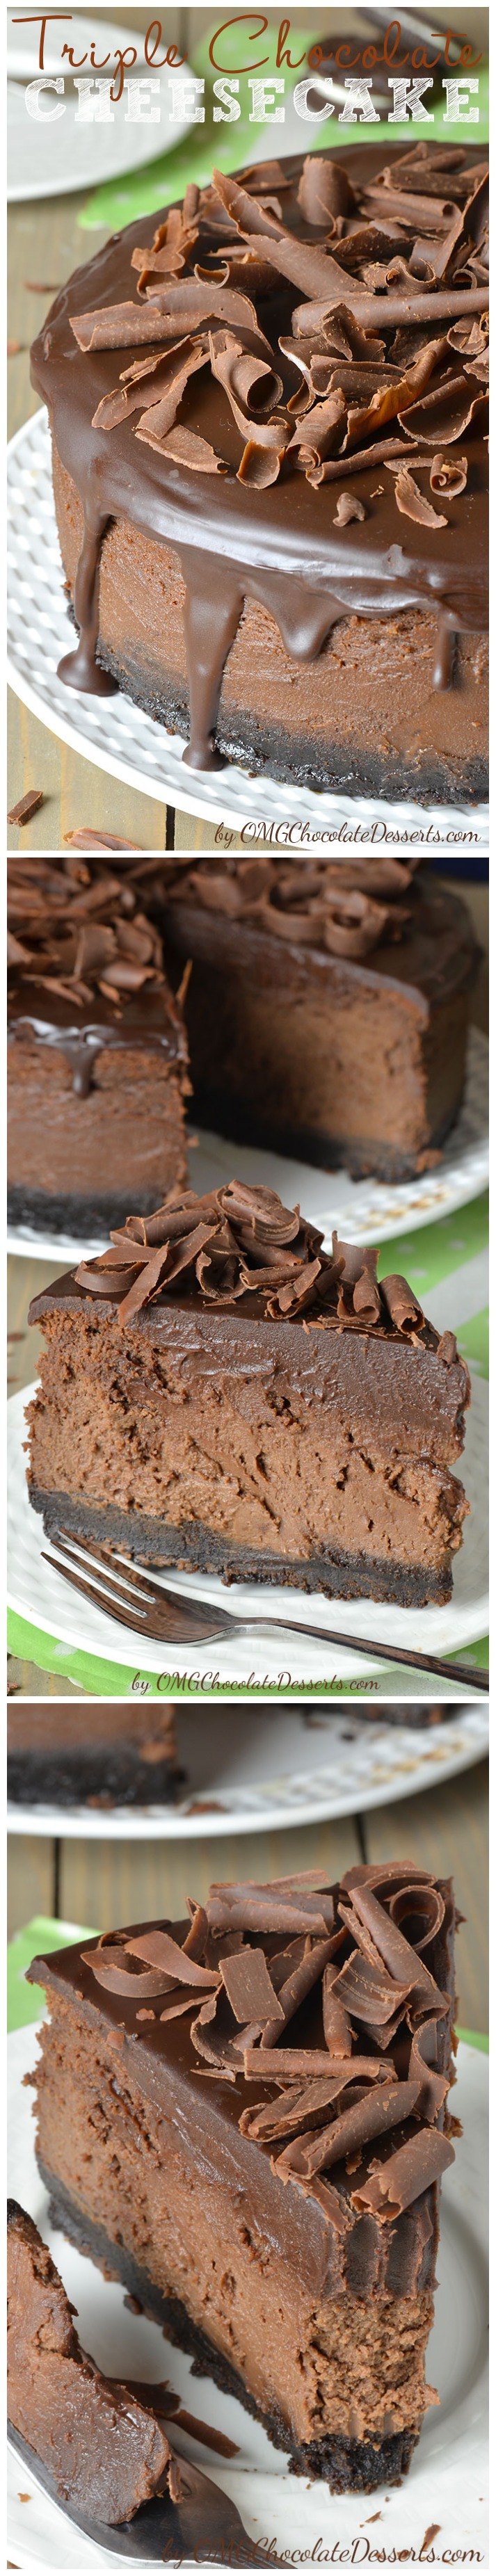 Triple Chocolate Cheesecake | Recipe Source